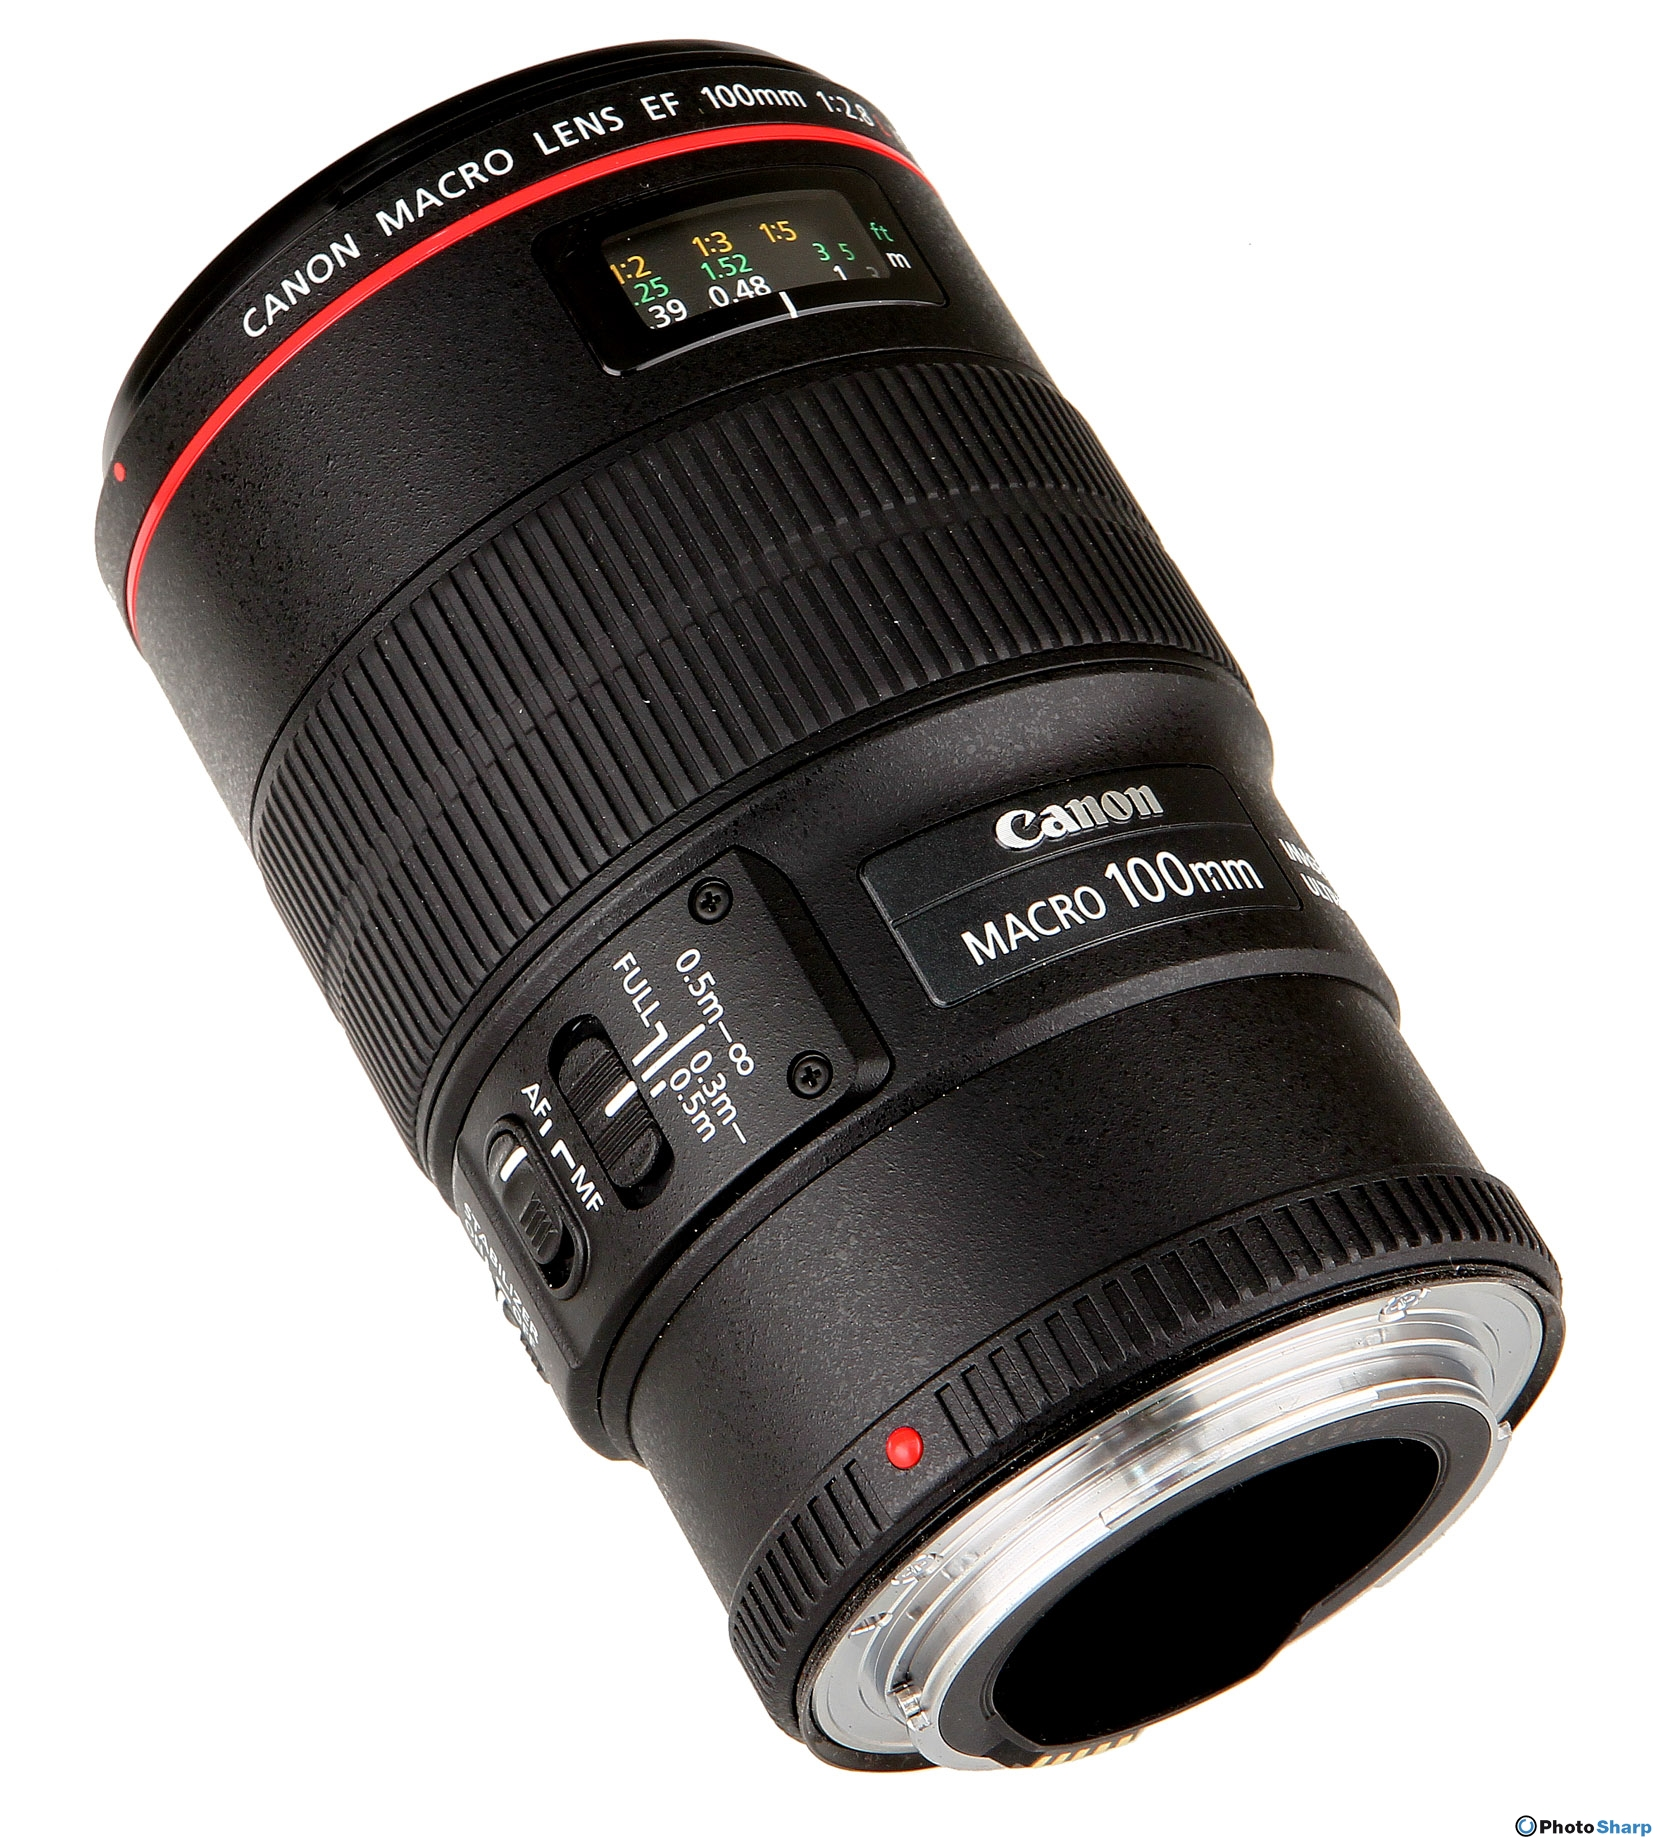 Canon 100mm f2.8 L Macro IS